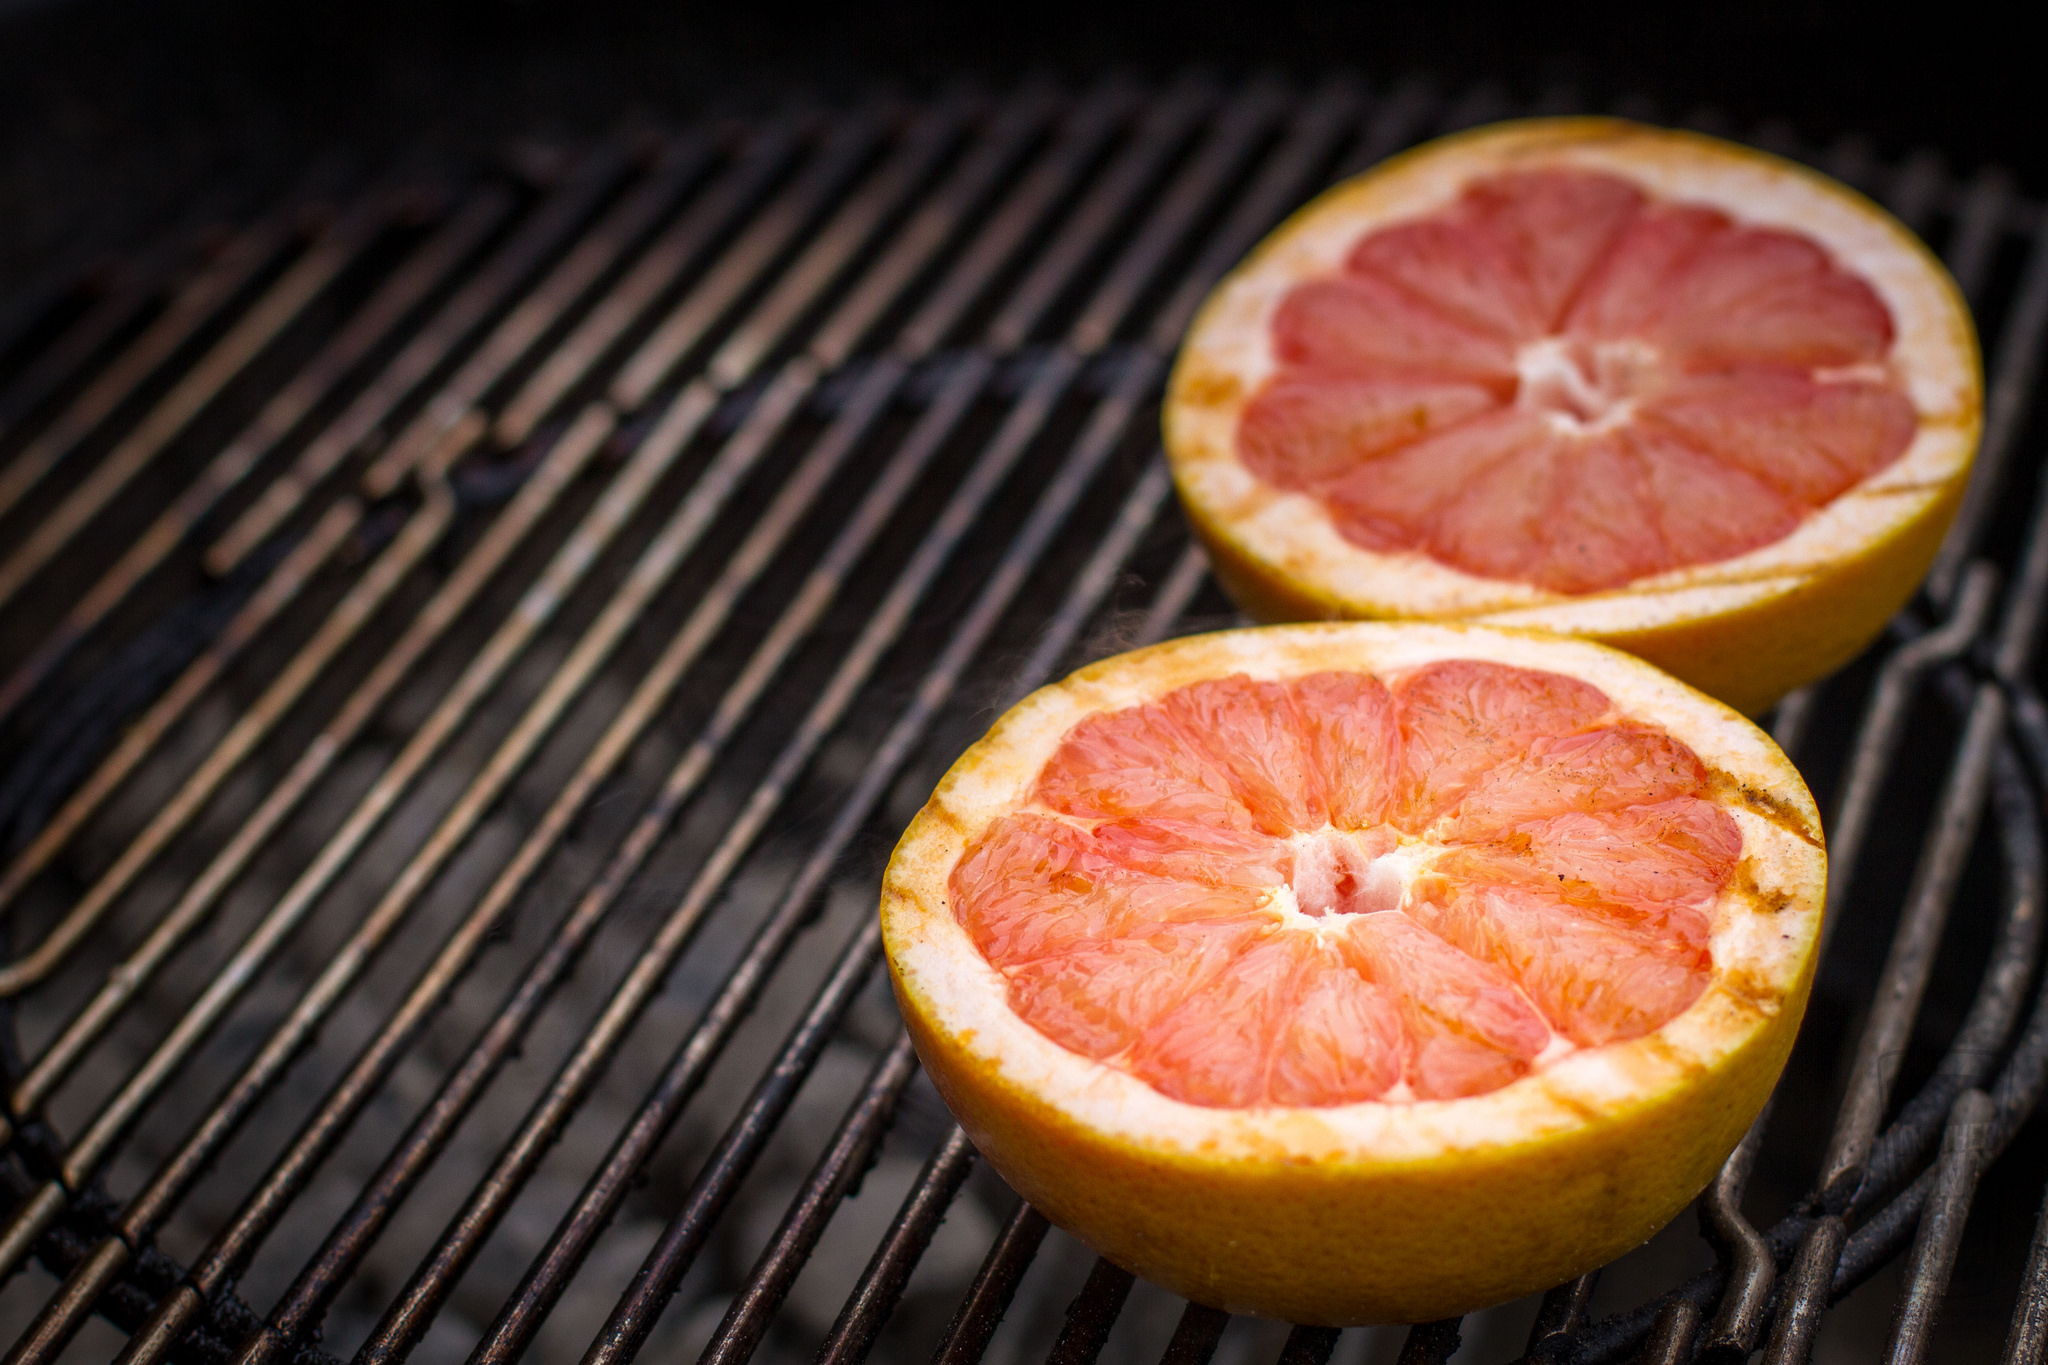 grilled grapefruit on grate.jpg